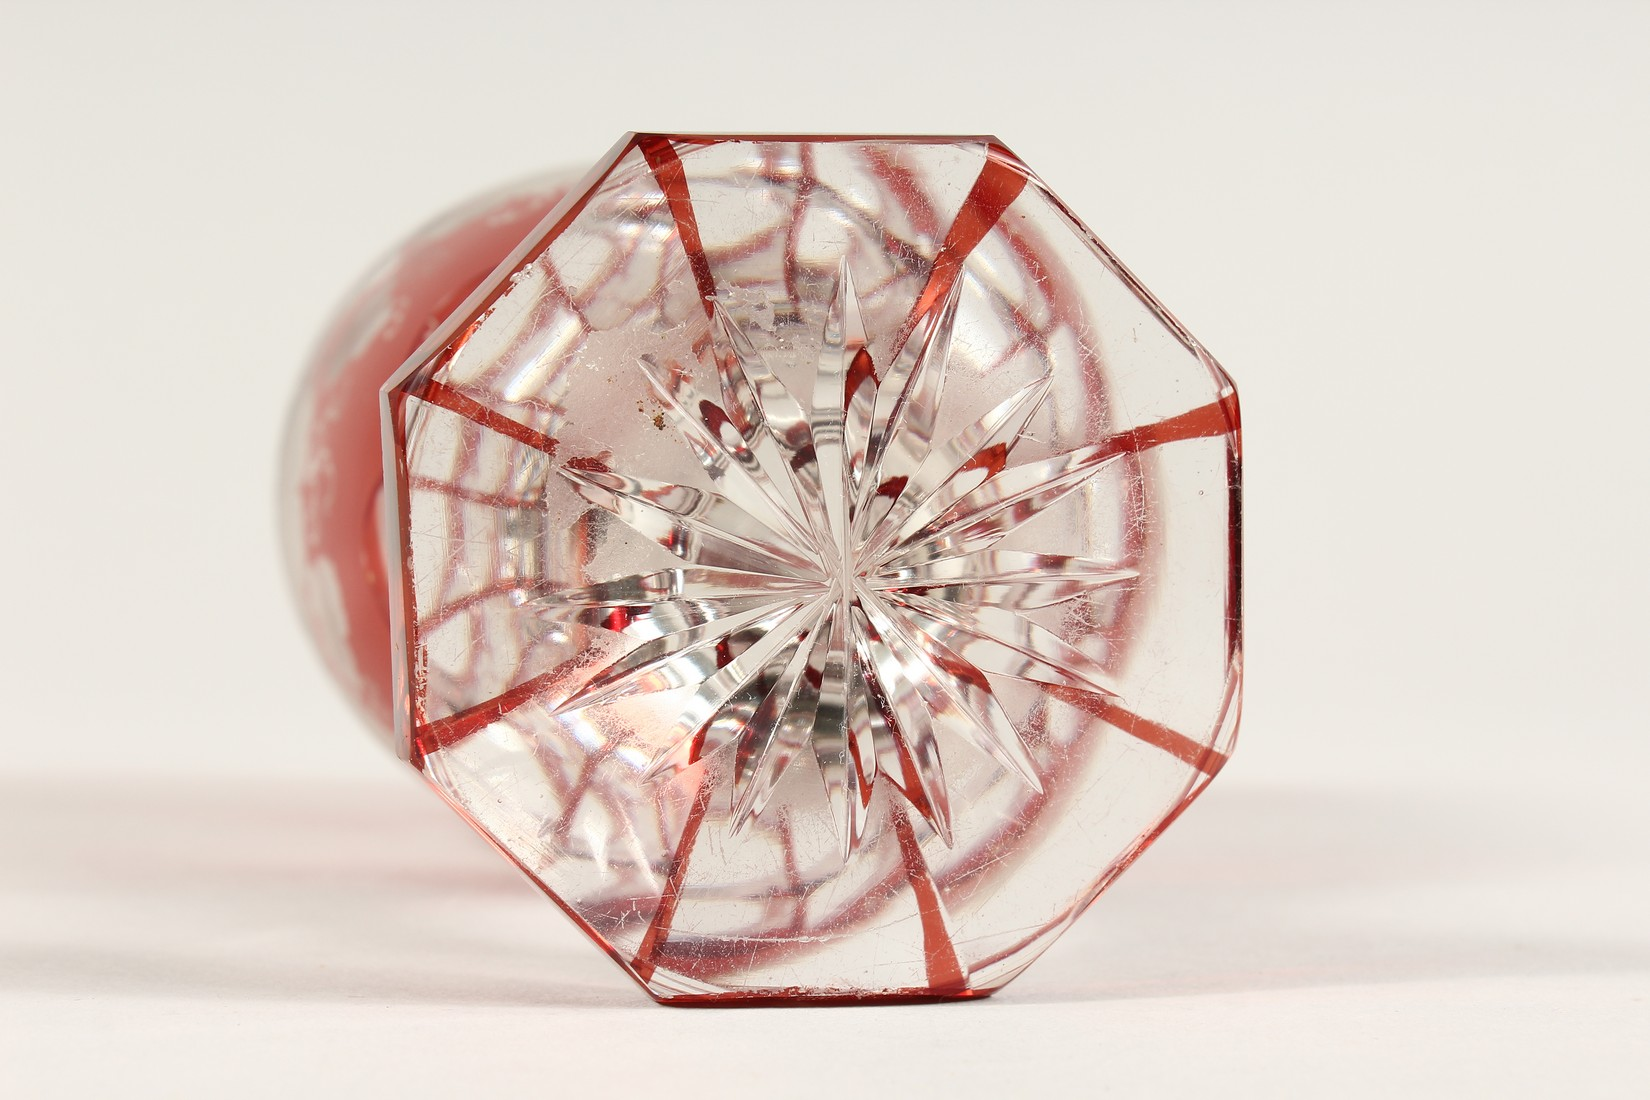 A GOOD BOHEMIAN RUBY GLASS GOBLET ethched with fruiting vines on an octagonal base. 6ins high. - Image 5 of 5